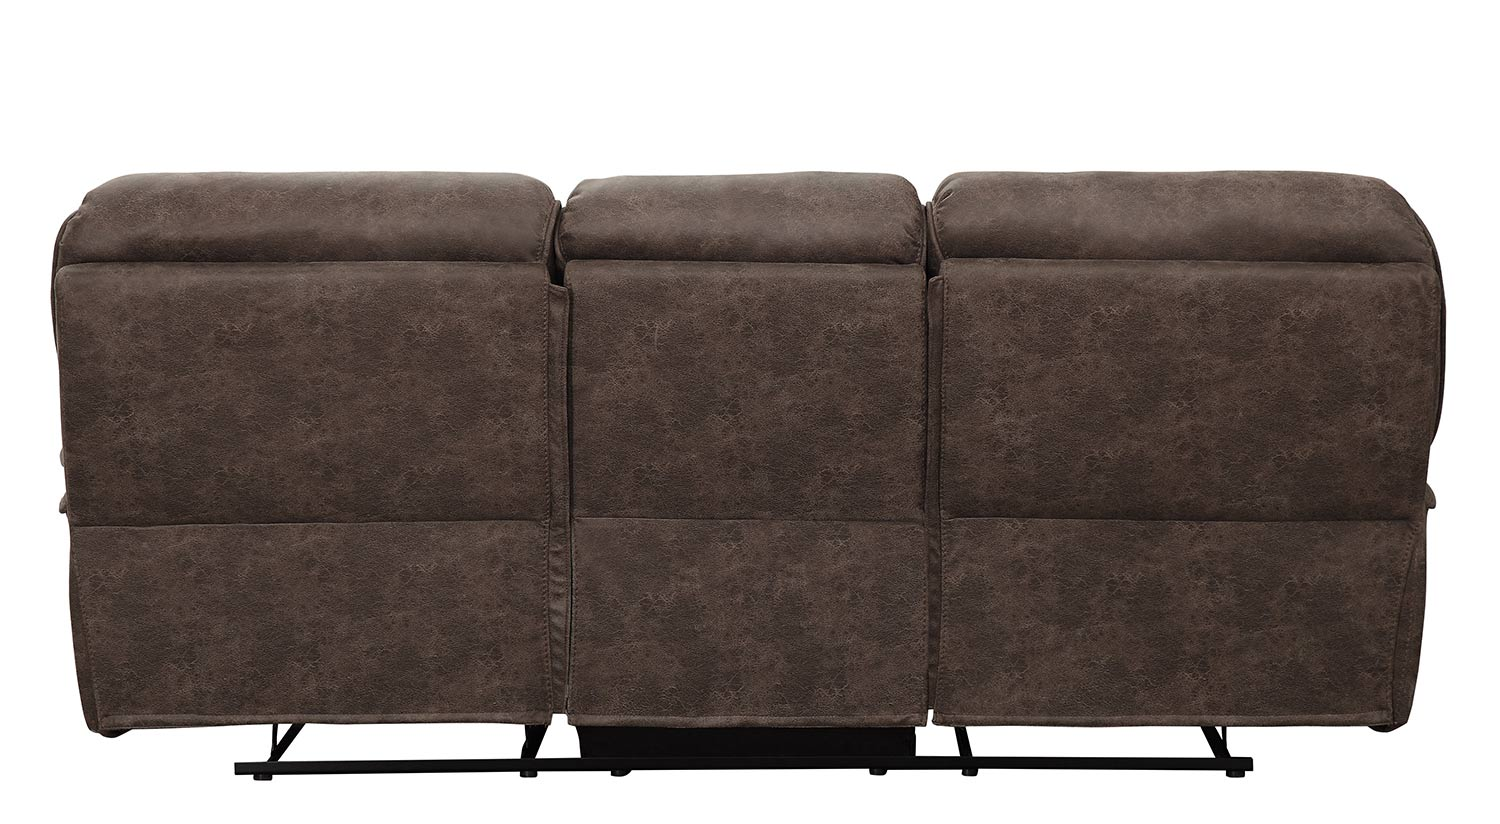 Homelegance Hadden Double Reclining Sofa - Dark Brown